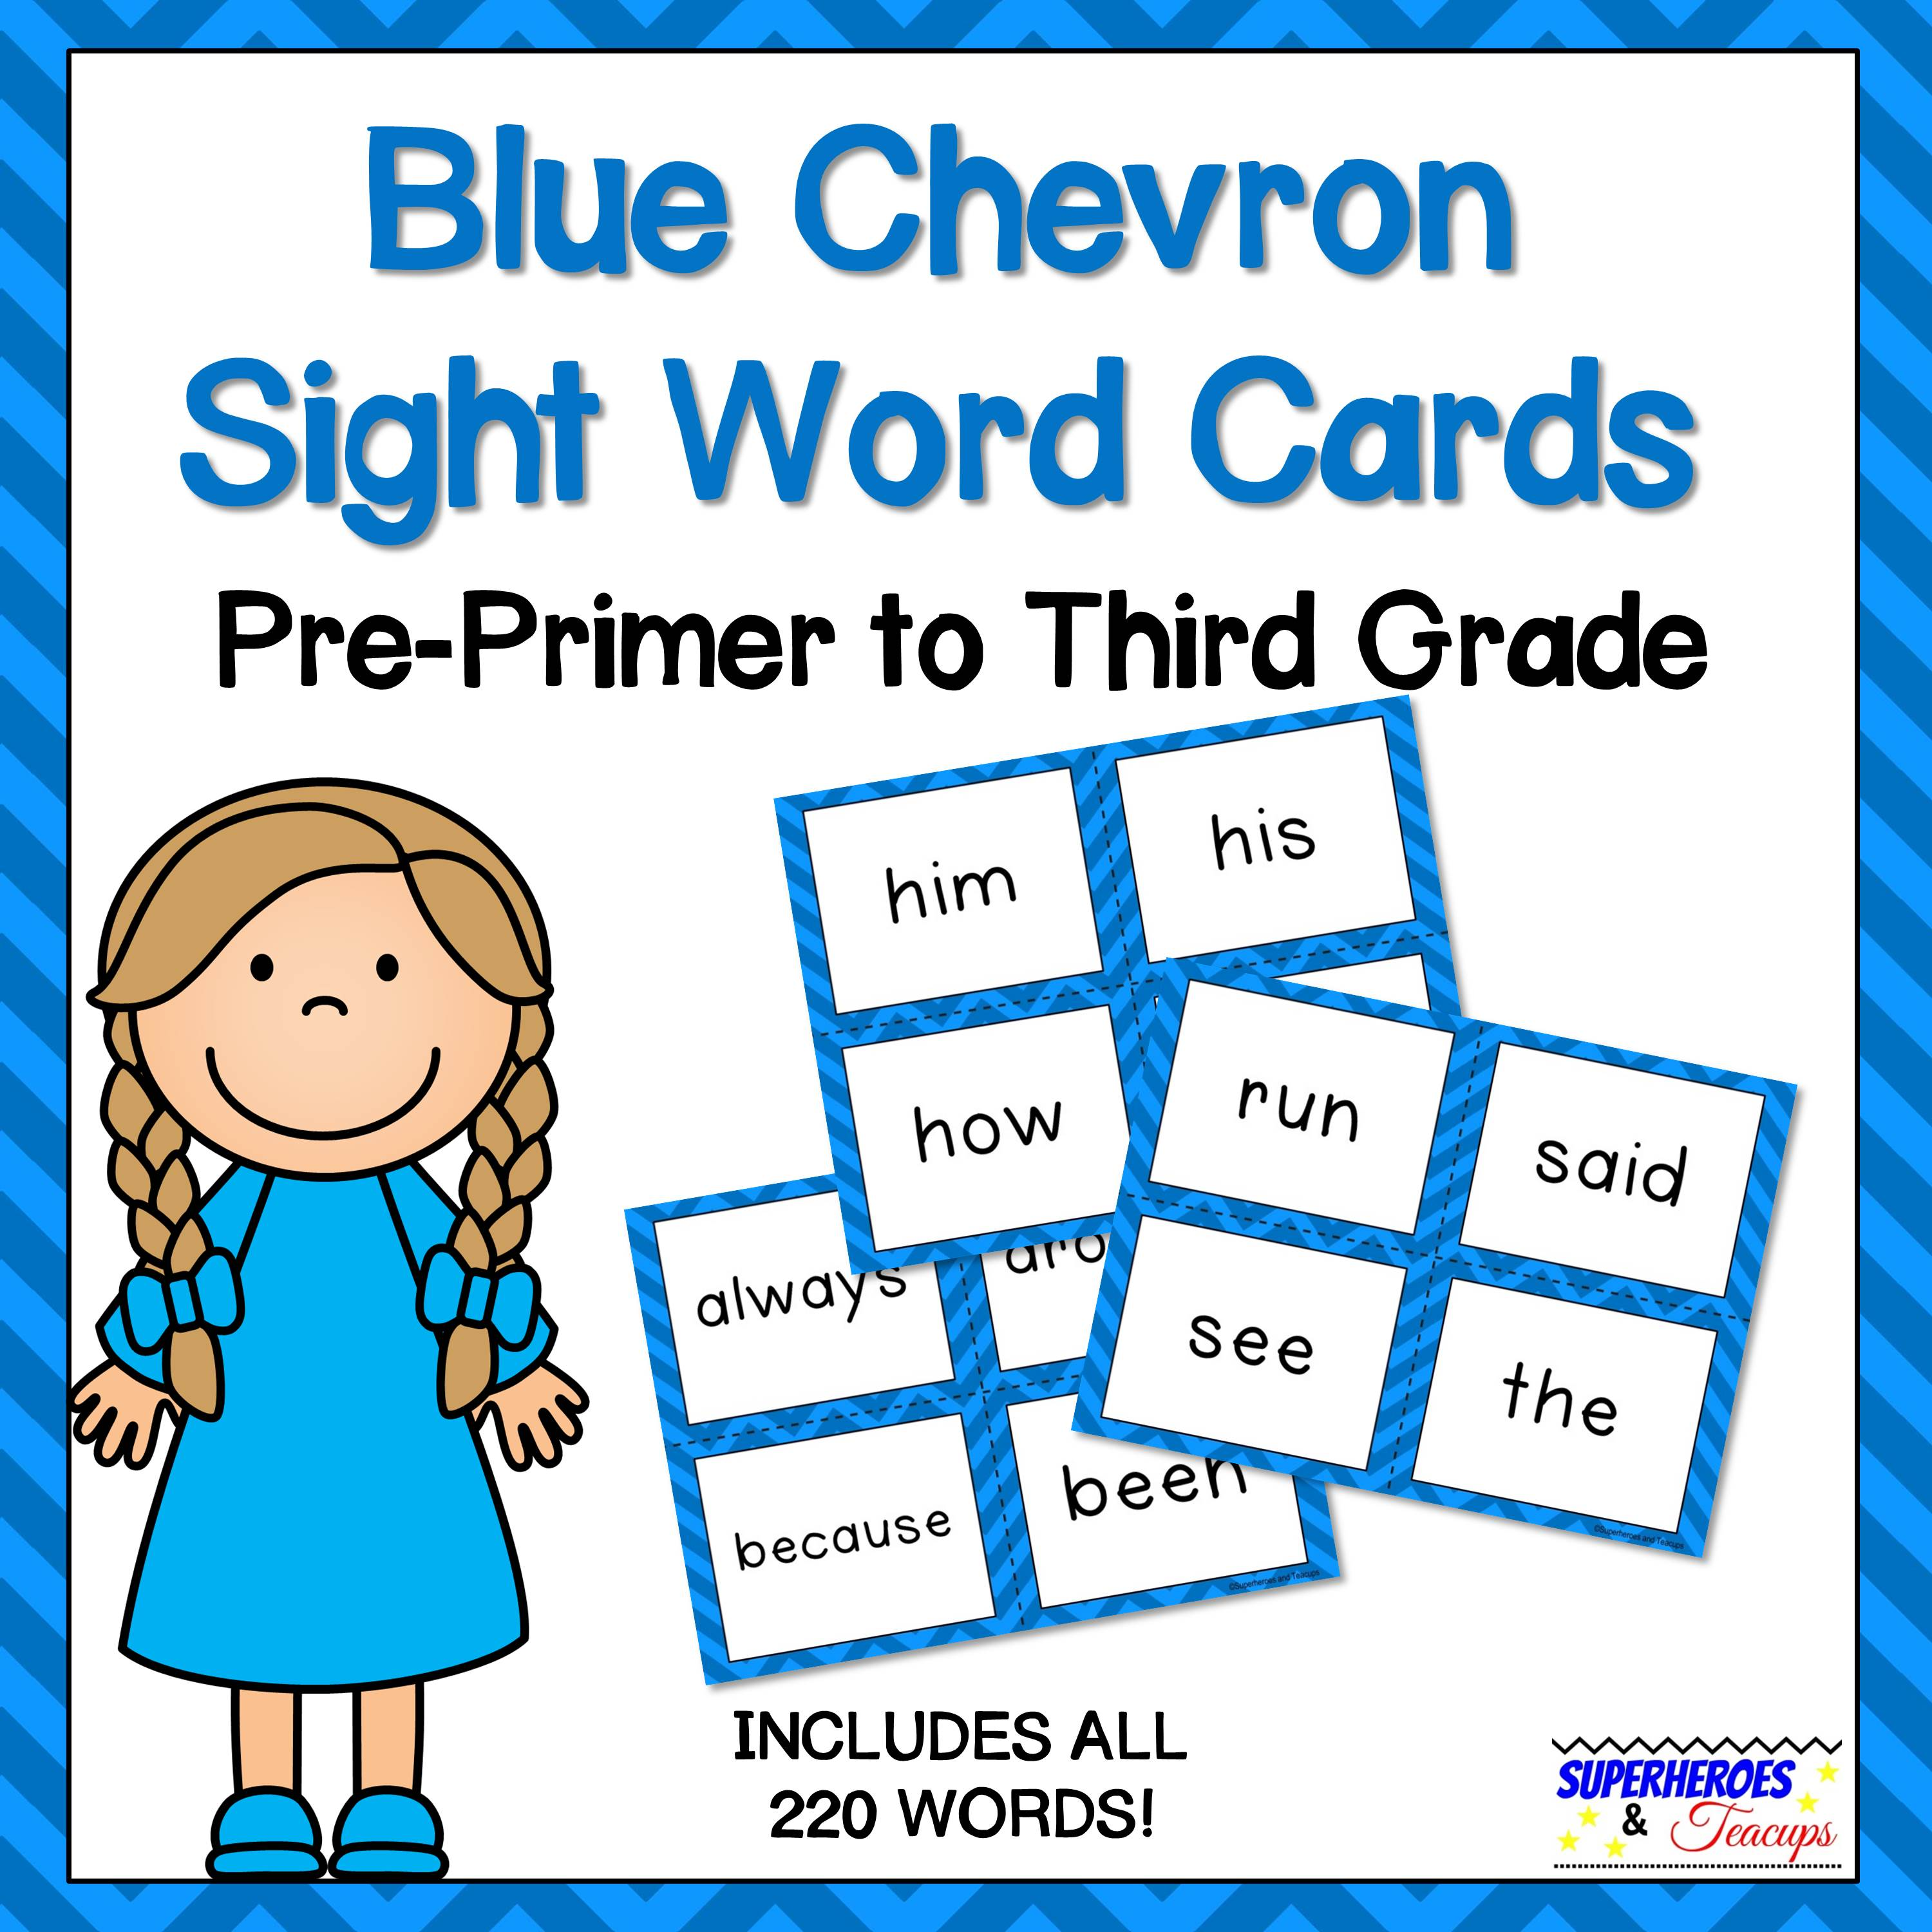 Blue Chevron Sight Word Cards for Early Readers